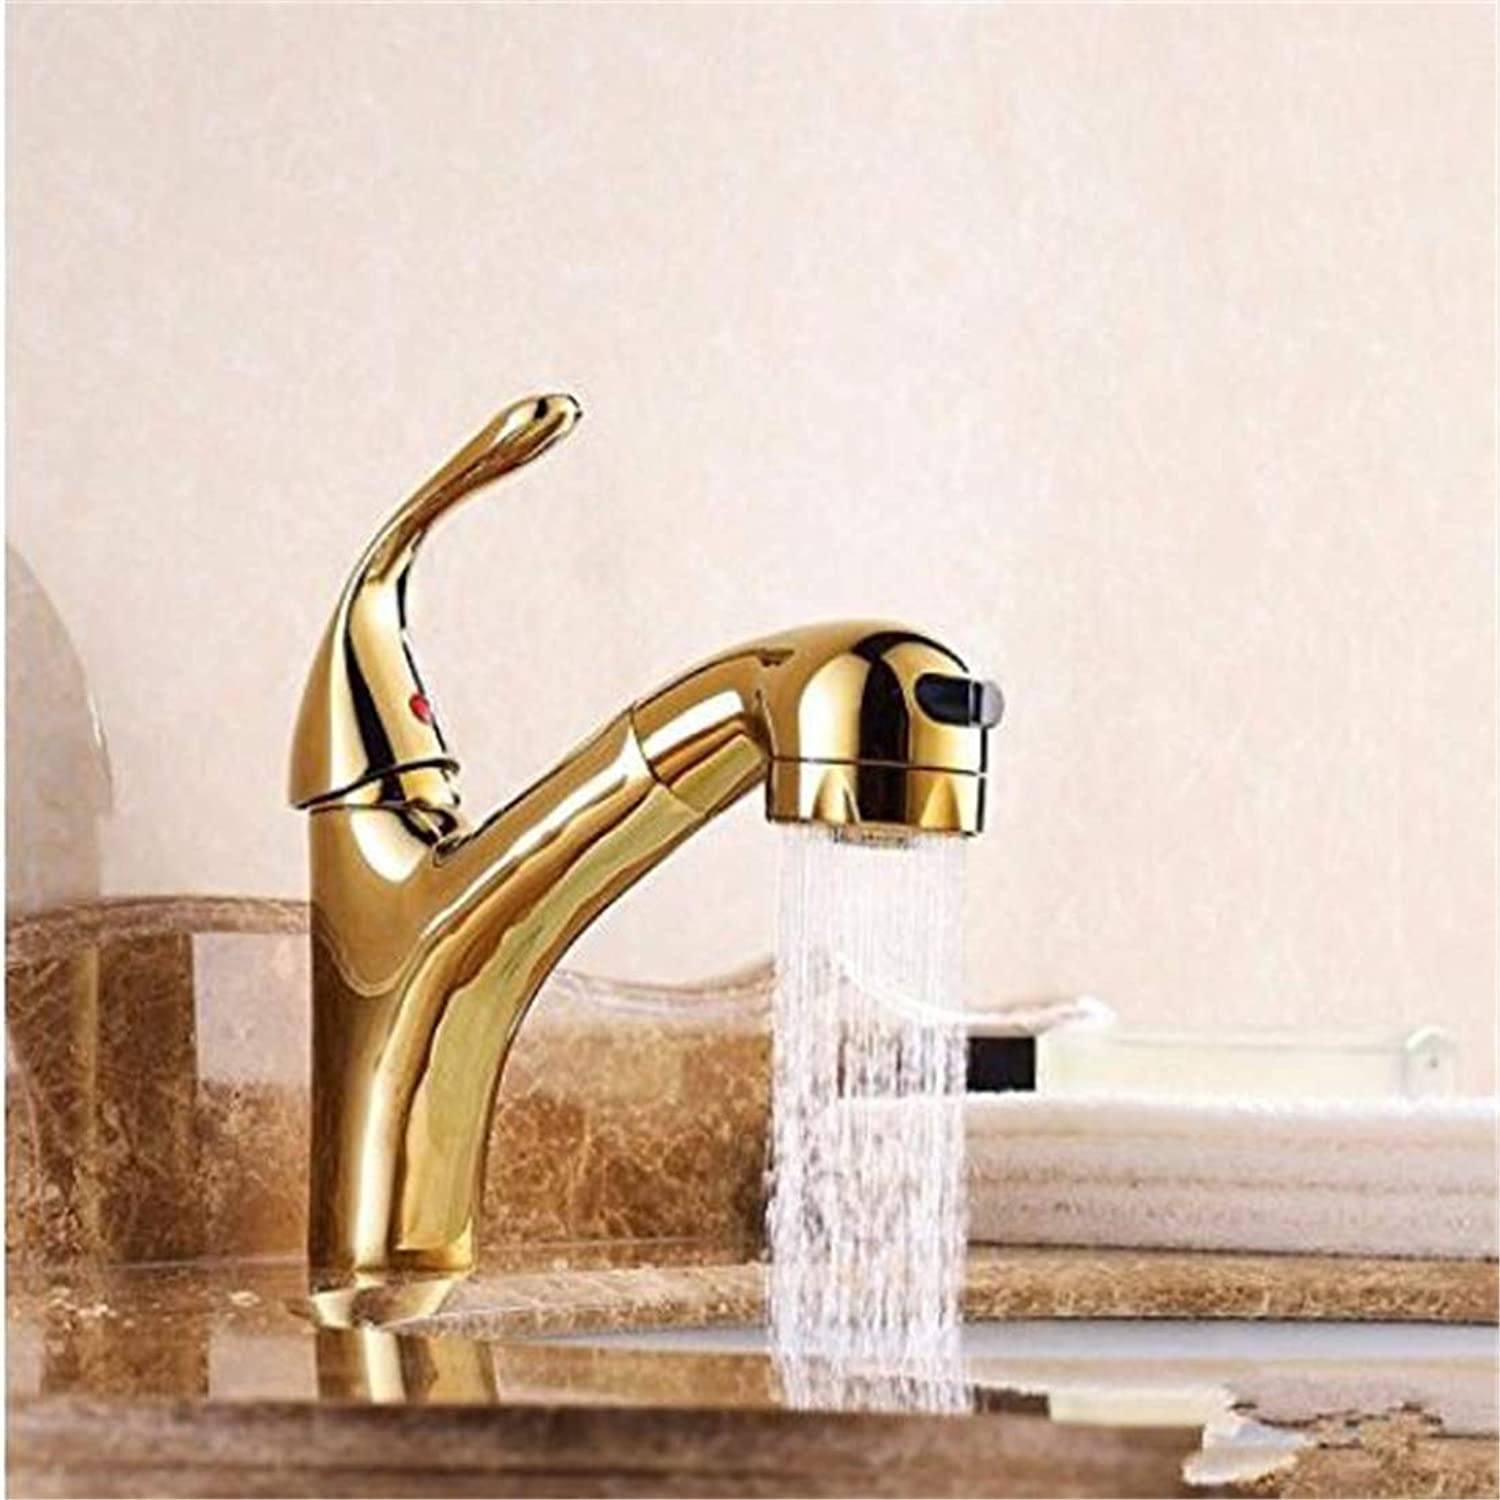 Faucet Luxury Modern Plated Faucet Mixercopper gold Cold Tropical Nozzle Stretch Double Pullable Washbasin Washbasin Faucet